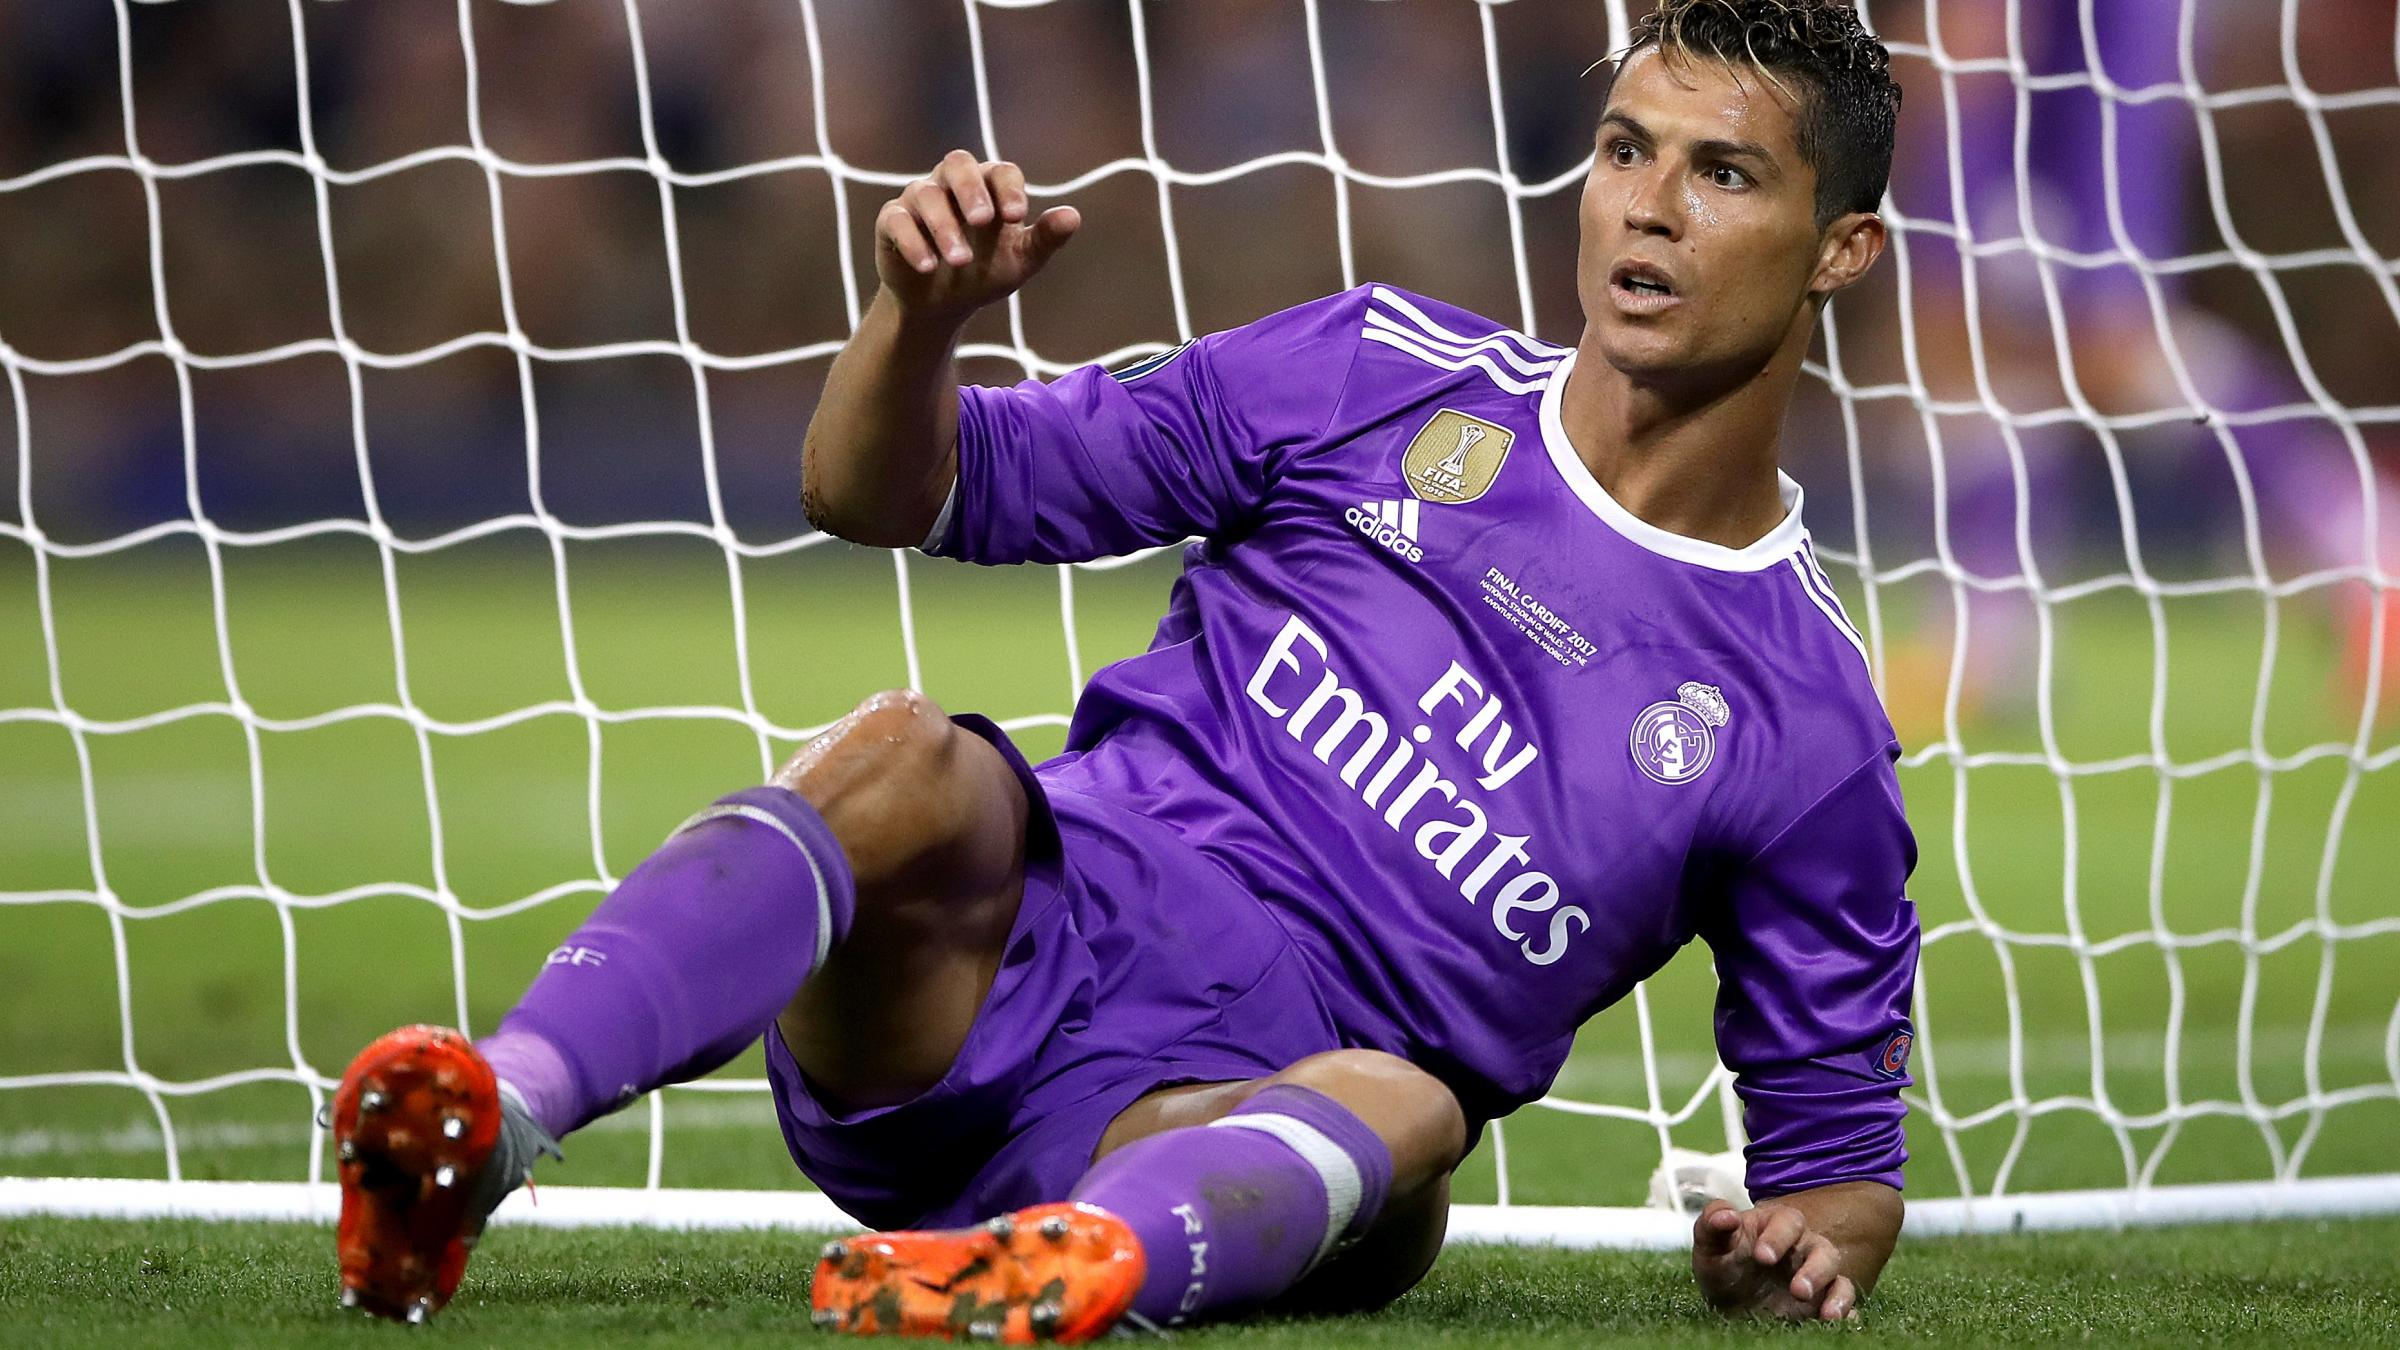 Cristiano Ronaldo accused of tax fraud by Spanish state prosecutor